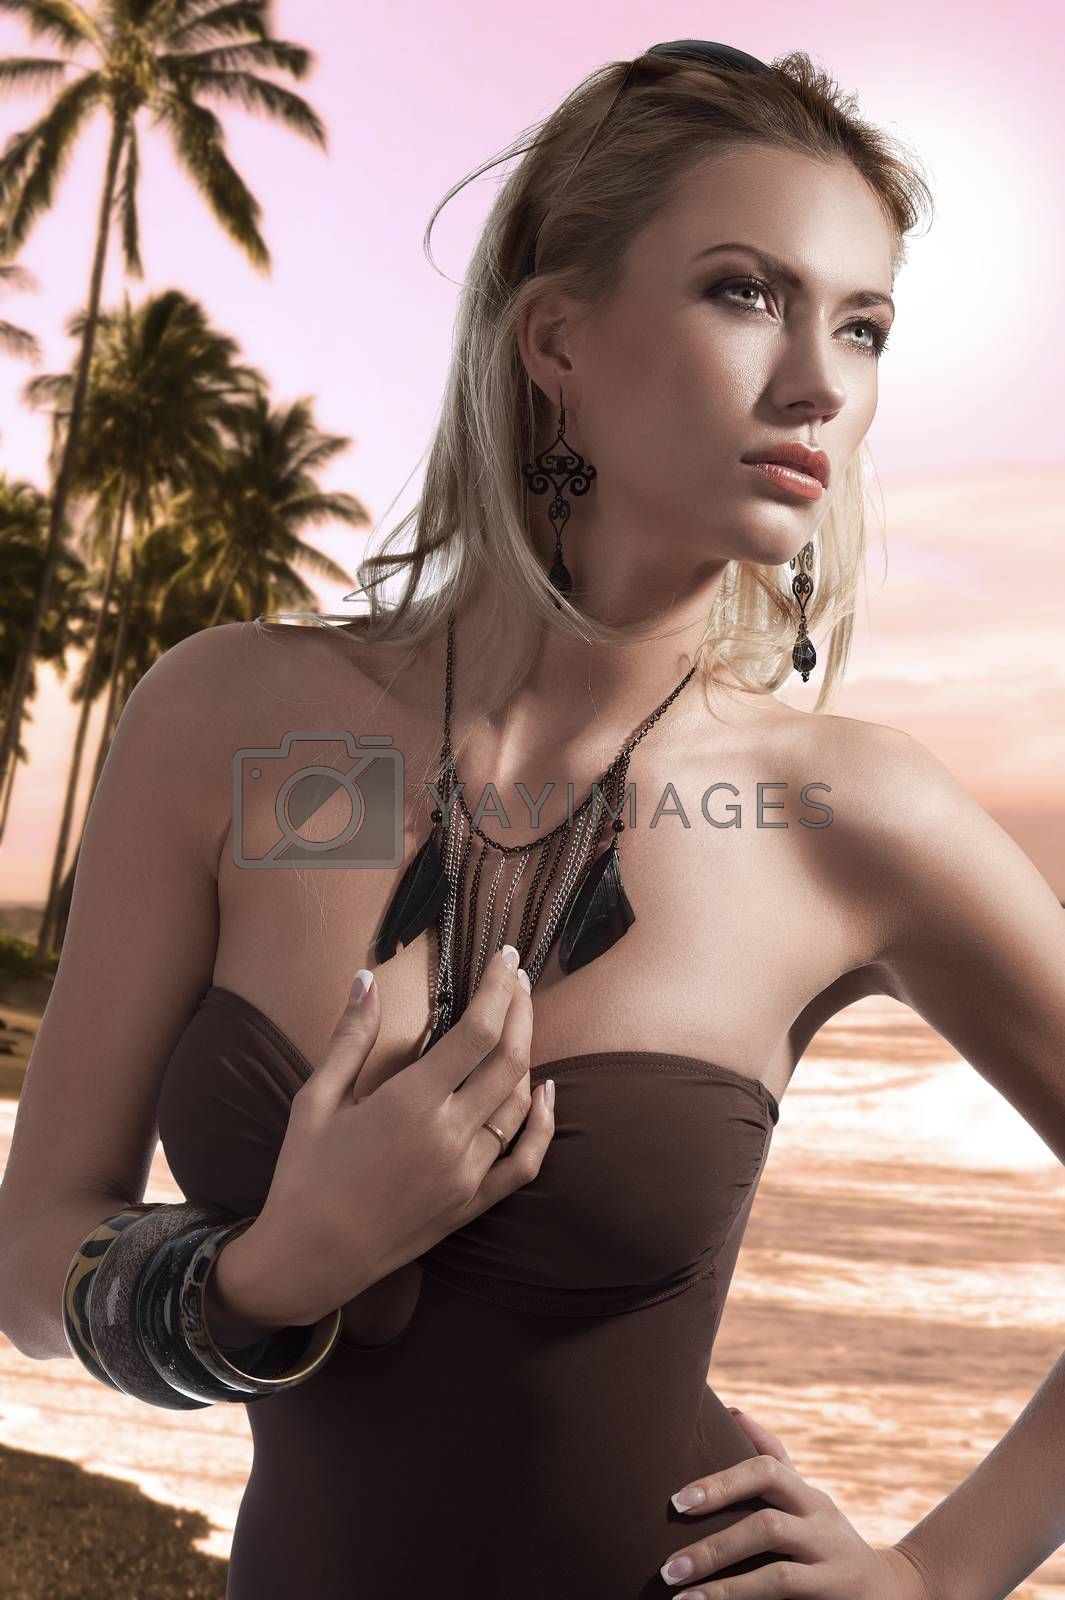 Royalty free image of blonde summer beauty posing in swimsuit by fotoCD